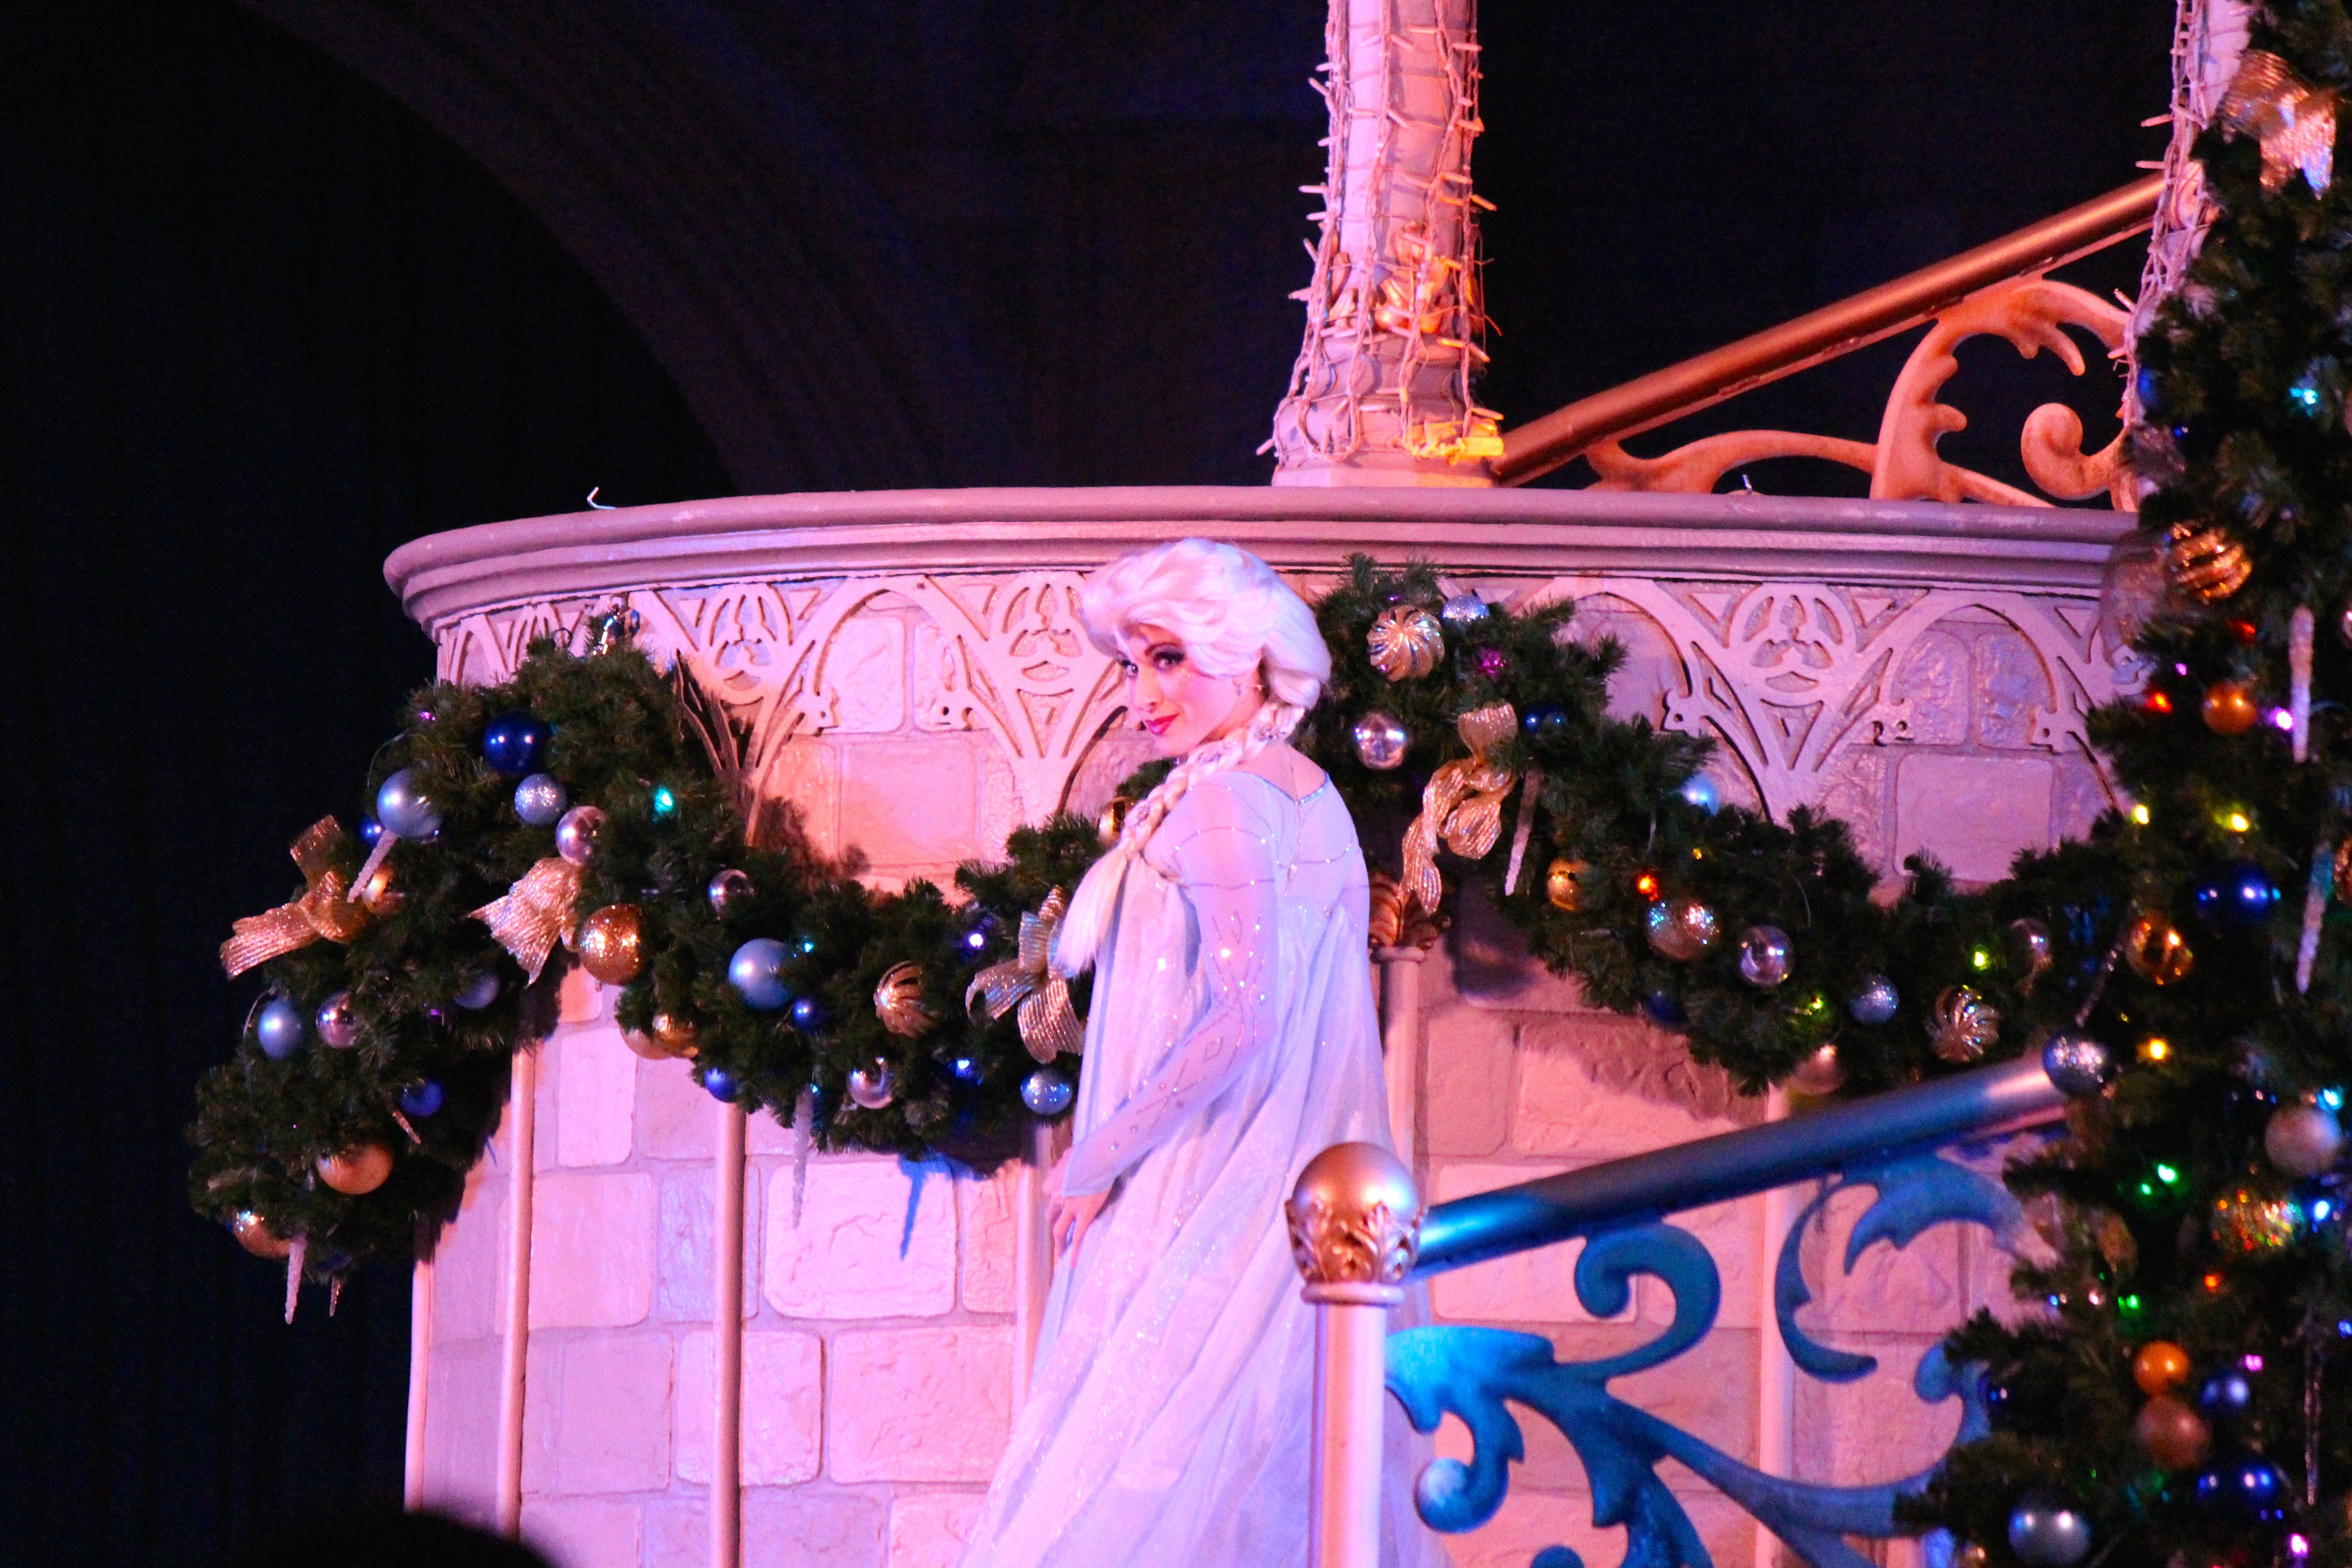 Elsa In A Frozen Holiday Wish #Wdw Walt Disney World